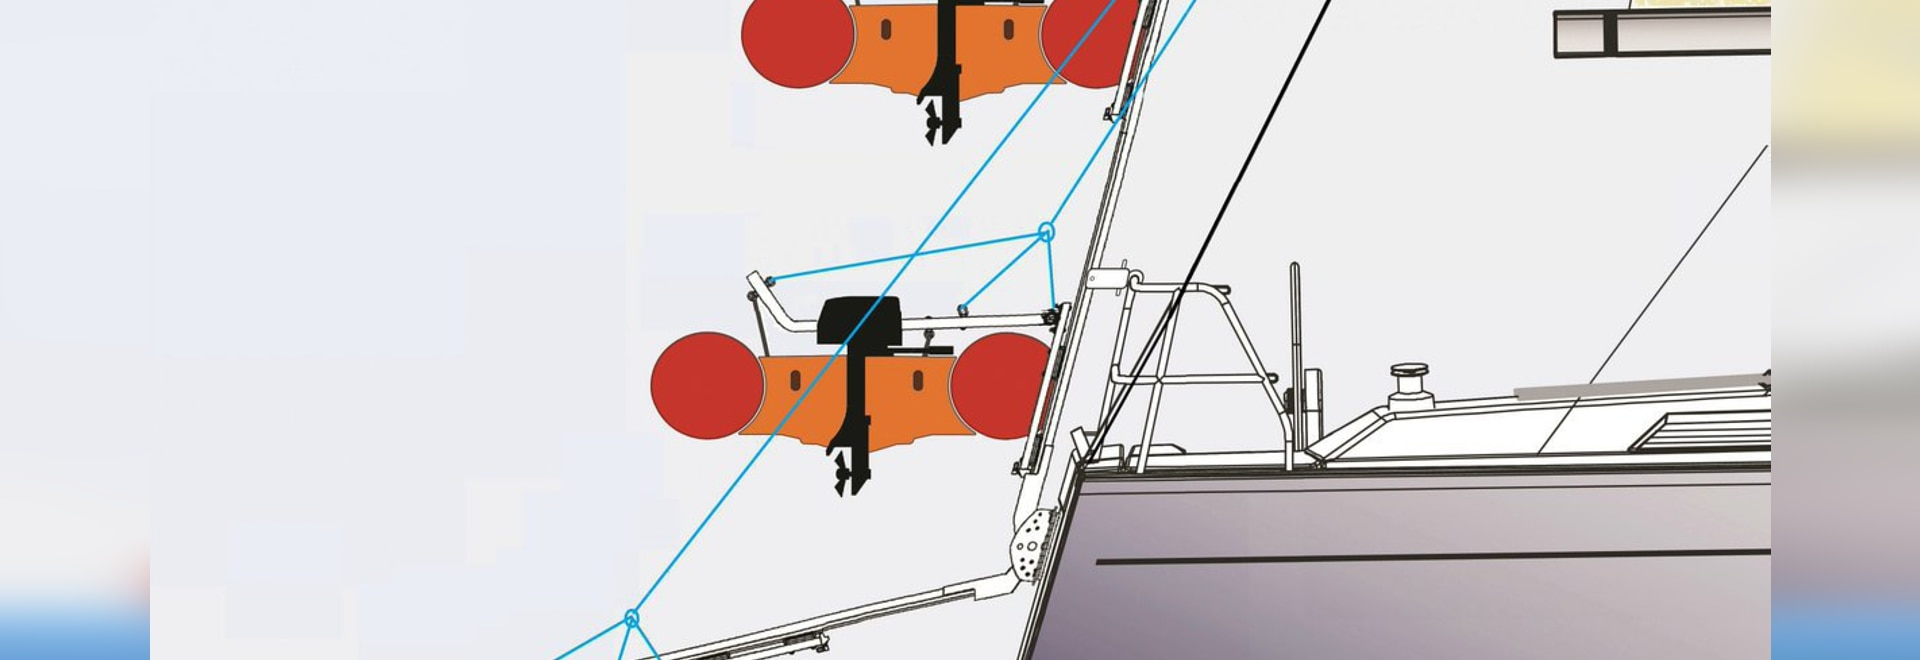 The three operating positions of Ark Marine's Dinghy Derrick